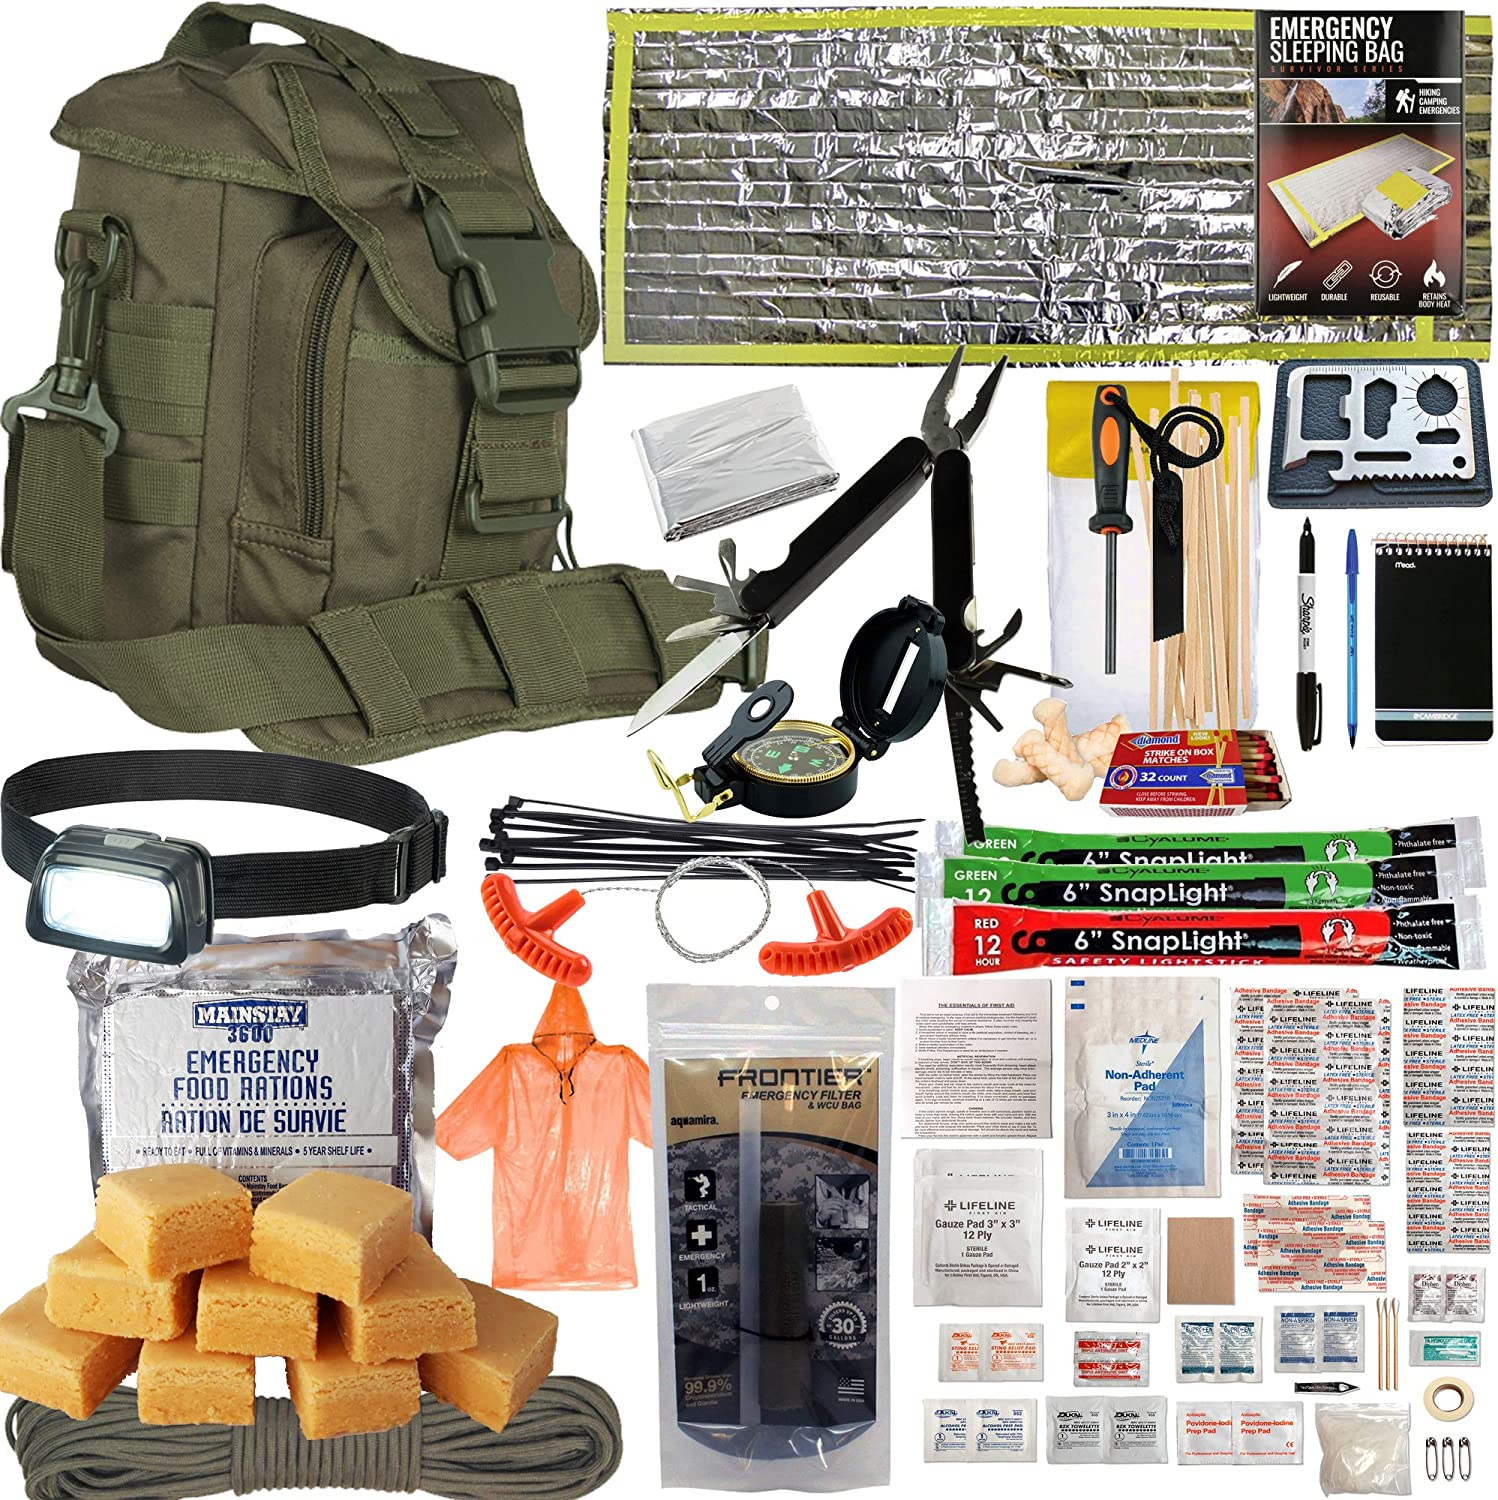 PREPPER'S FAVORITE: Compact Disaster 72 Hr Survival Kit with Food, Water Straw Filter, First Aid, Fire Starter, Tools, Lights and Sleeping Bag. Ideal For Get Home Bag, Mini Bug Out Bag, Earthquake Kit